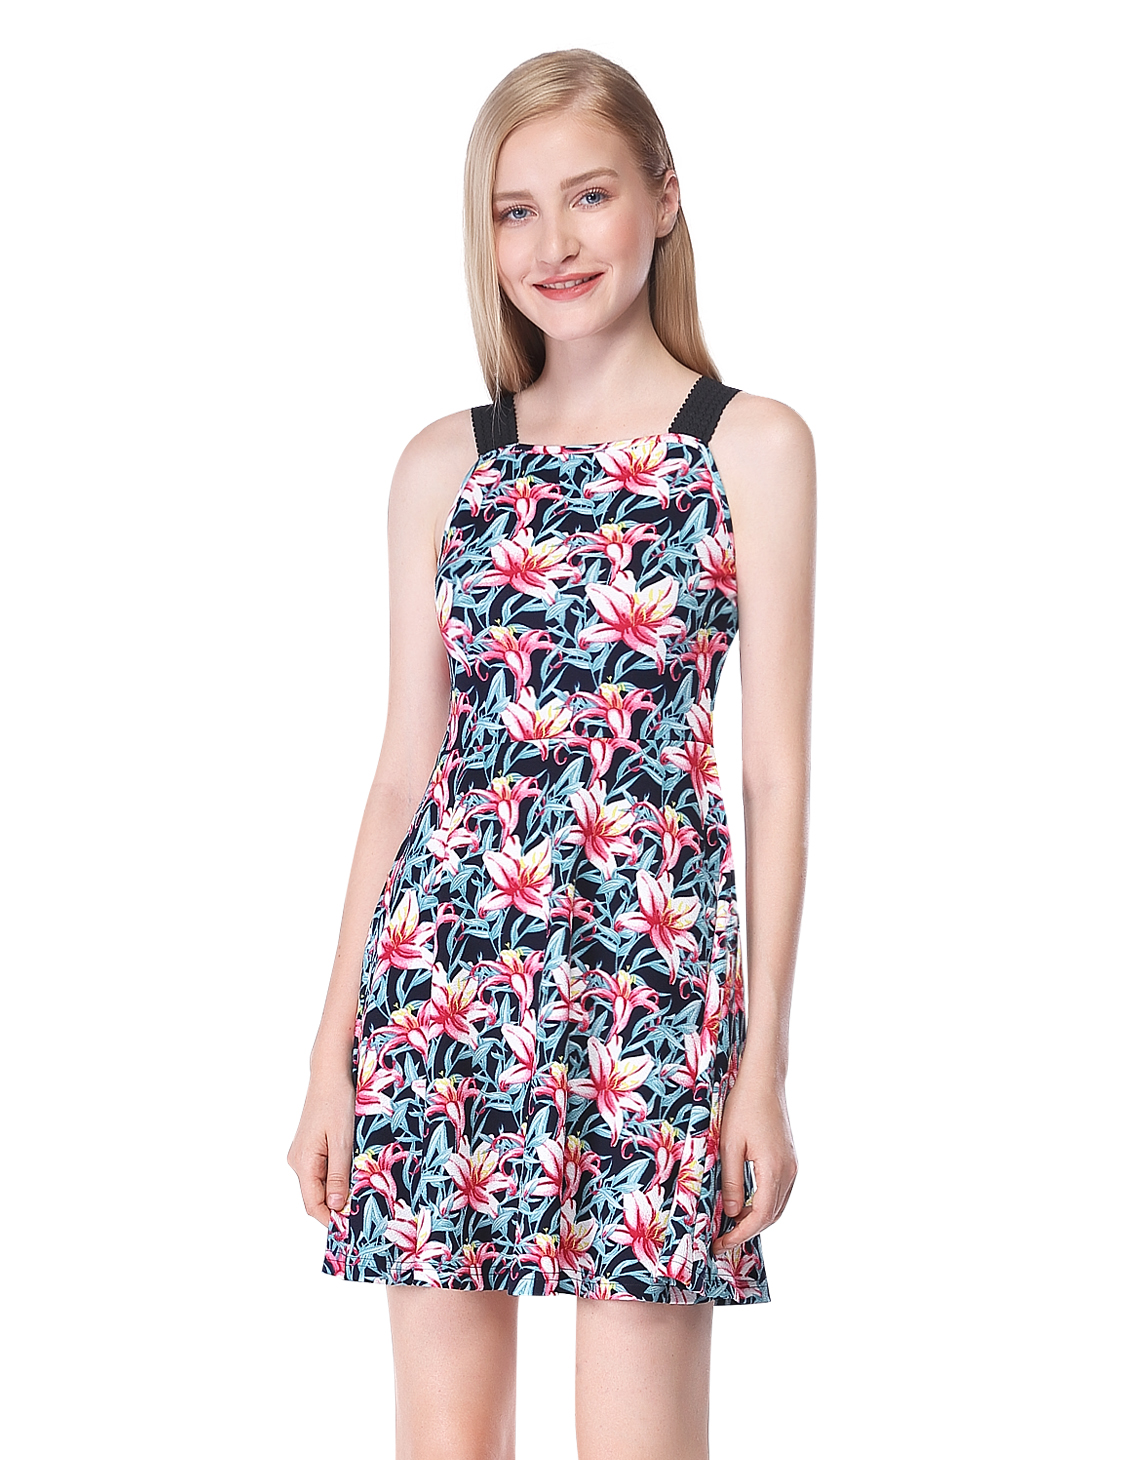 Alisapan Women's Navy Blue Floral Printed Short Casual ...